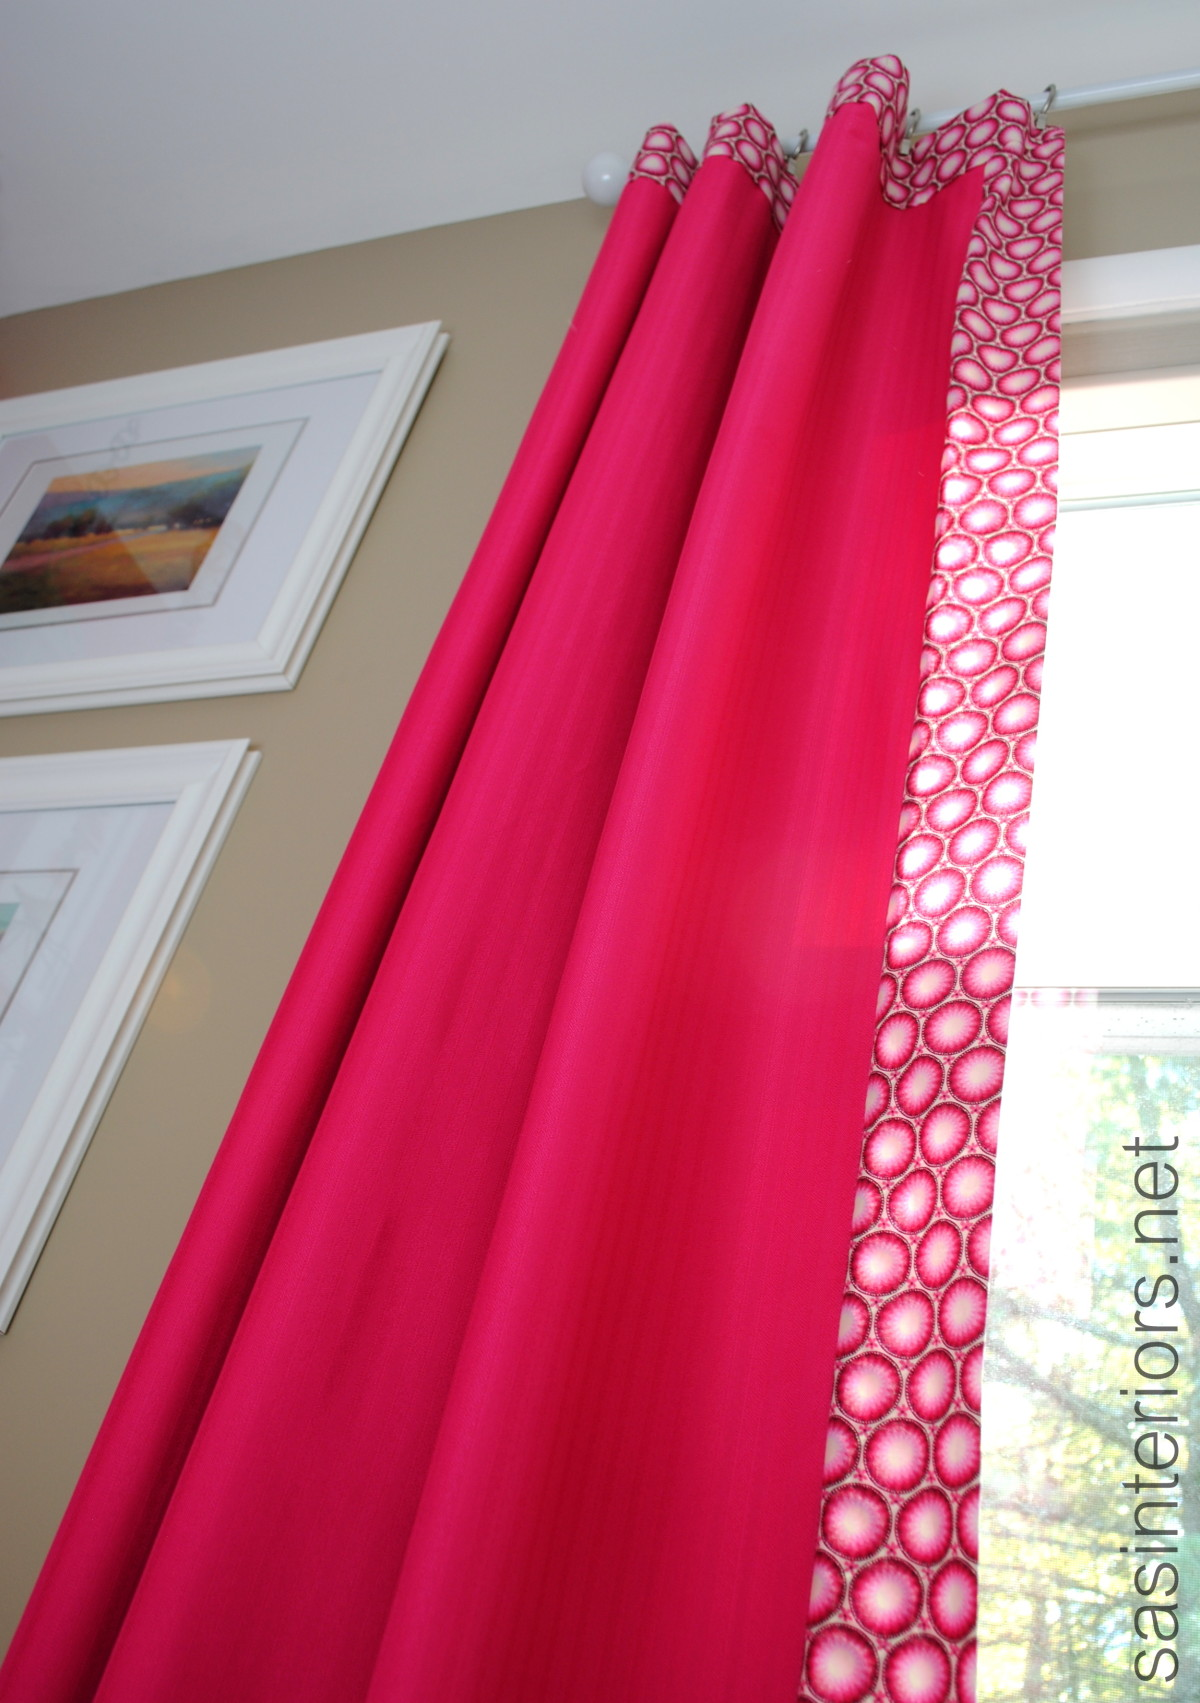 HowTo Add Decorative Trim to Curtains for cheap  Jenna Burger